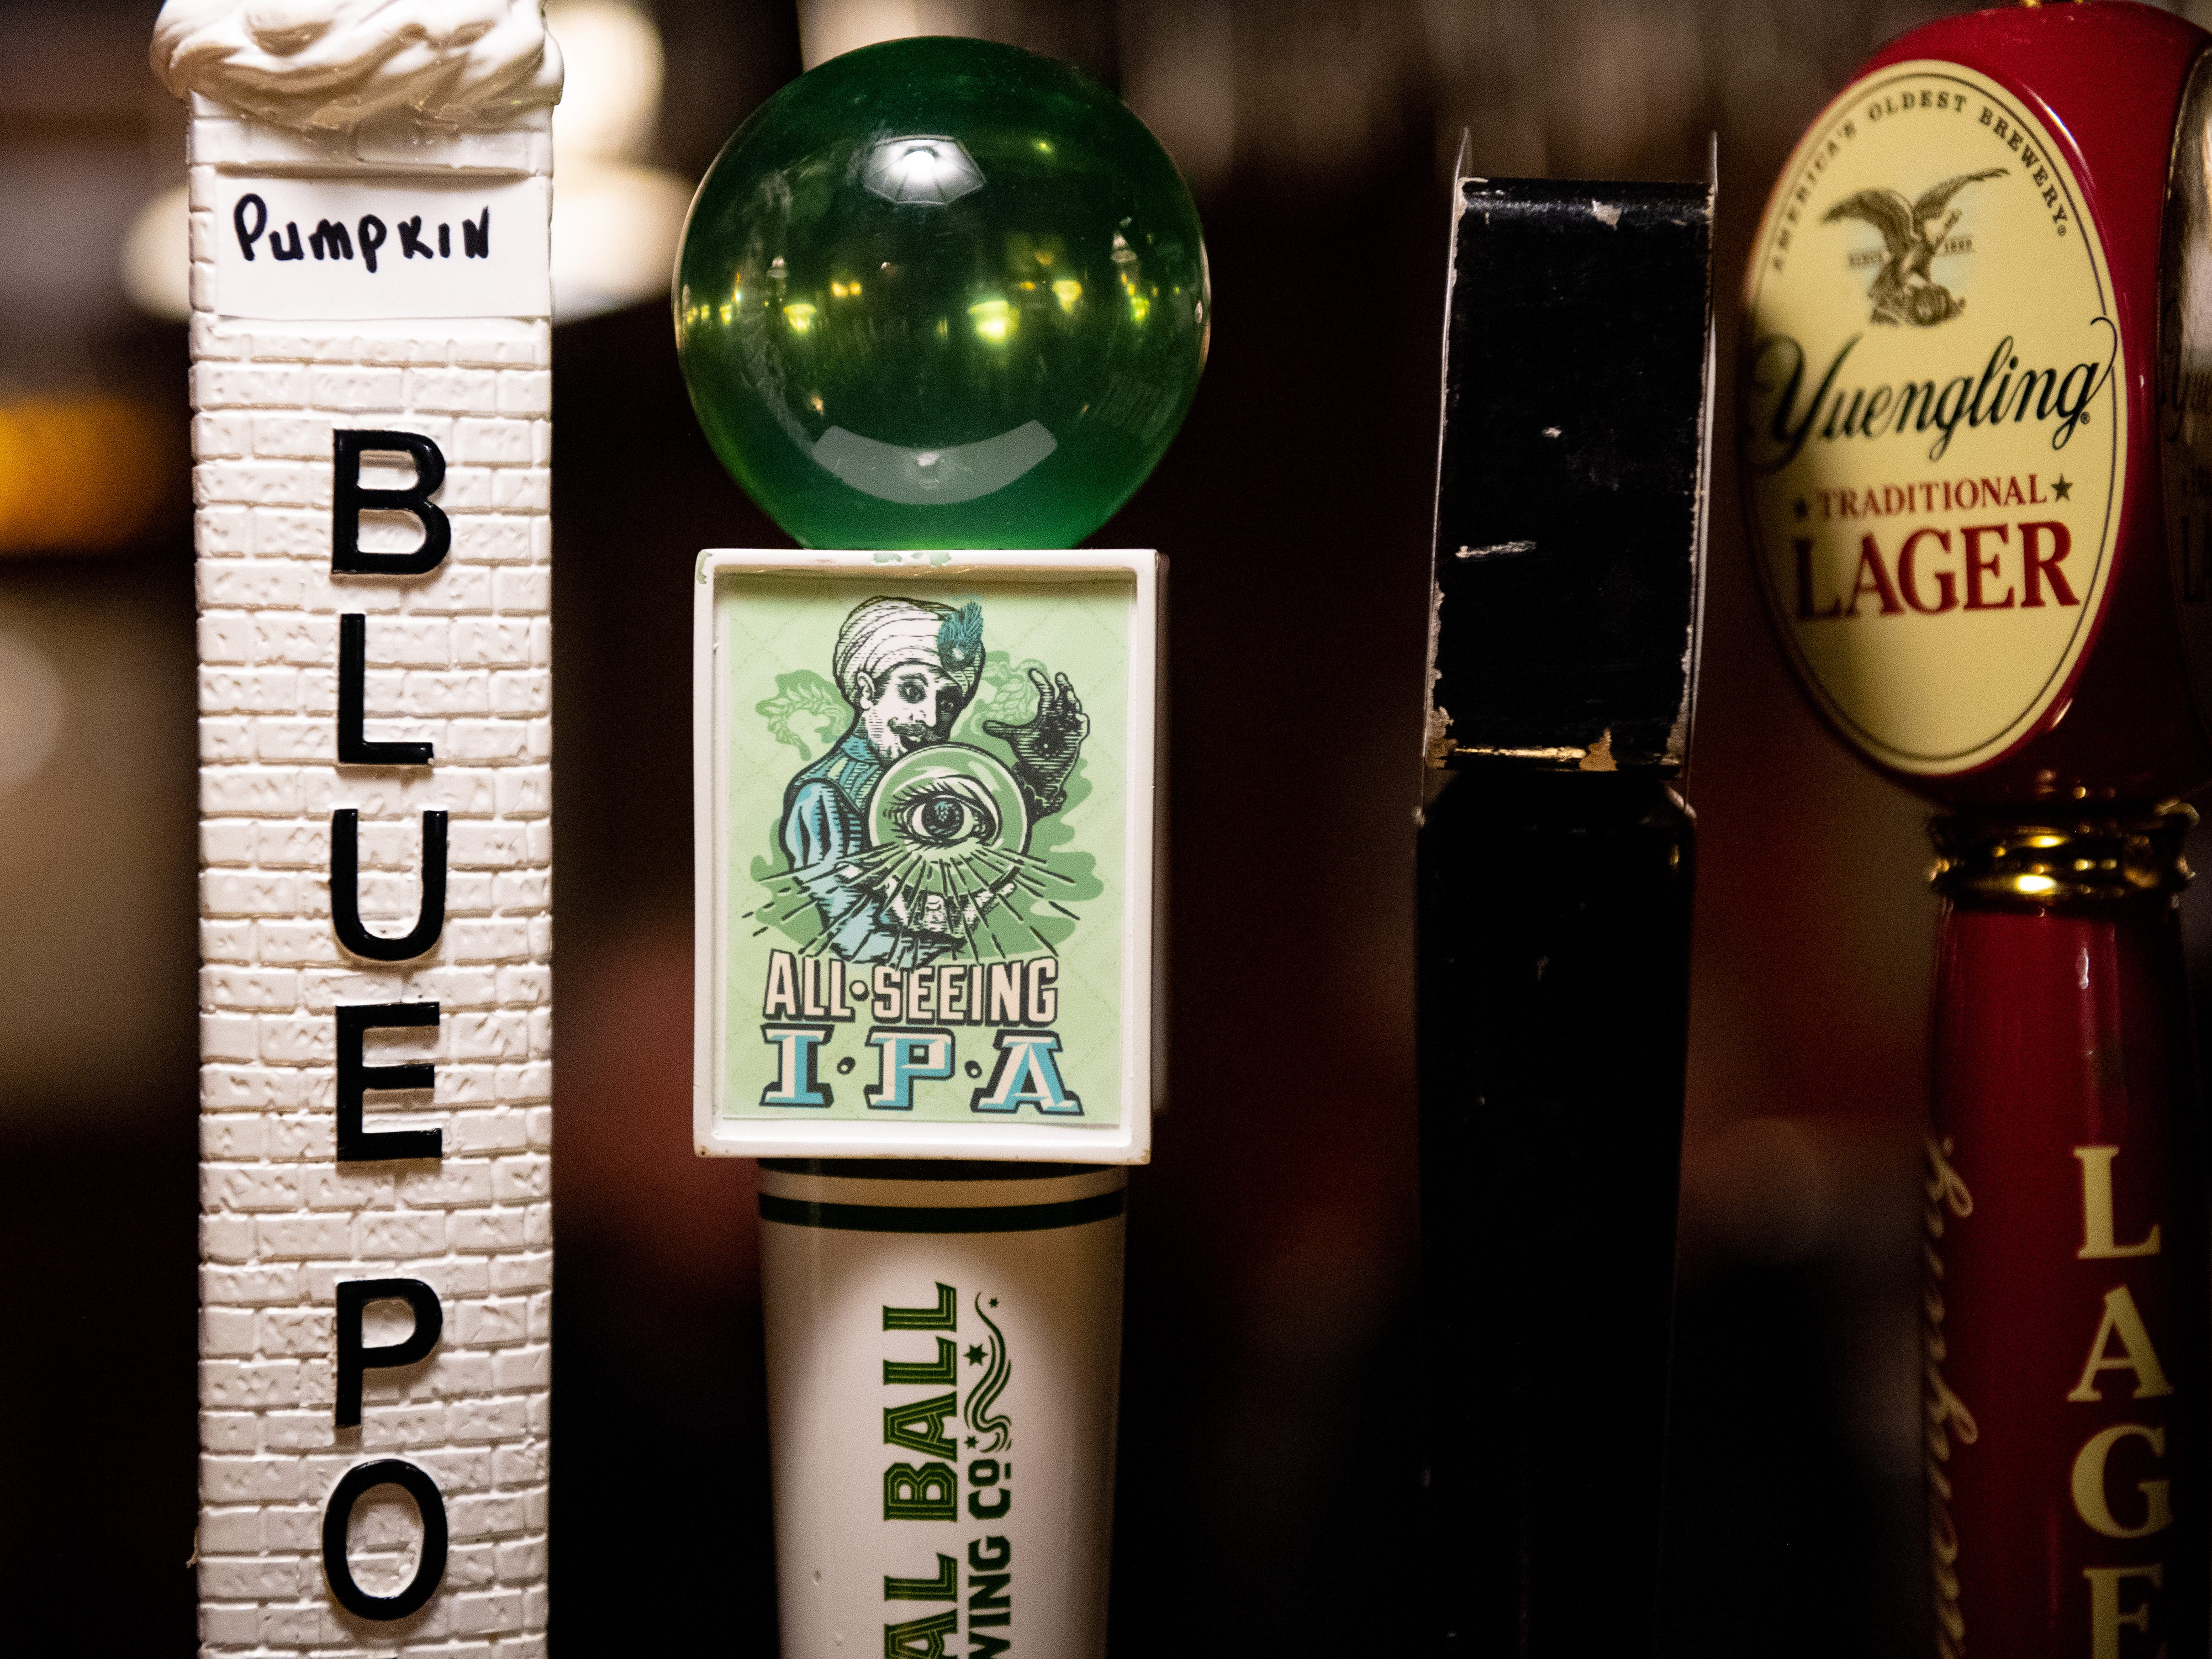 Roosevelt Tavern has a wide variety of beers on tap.